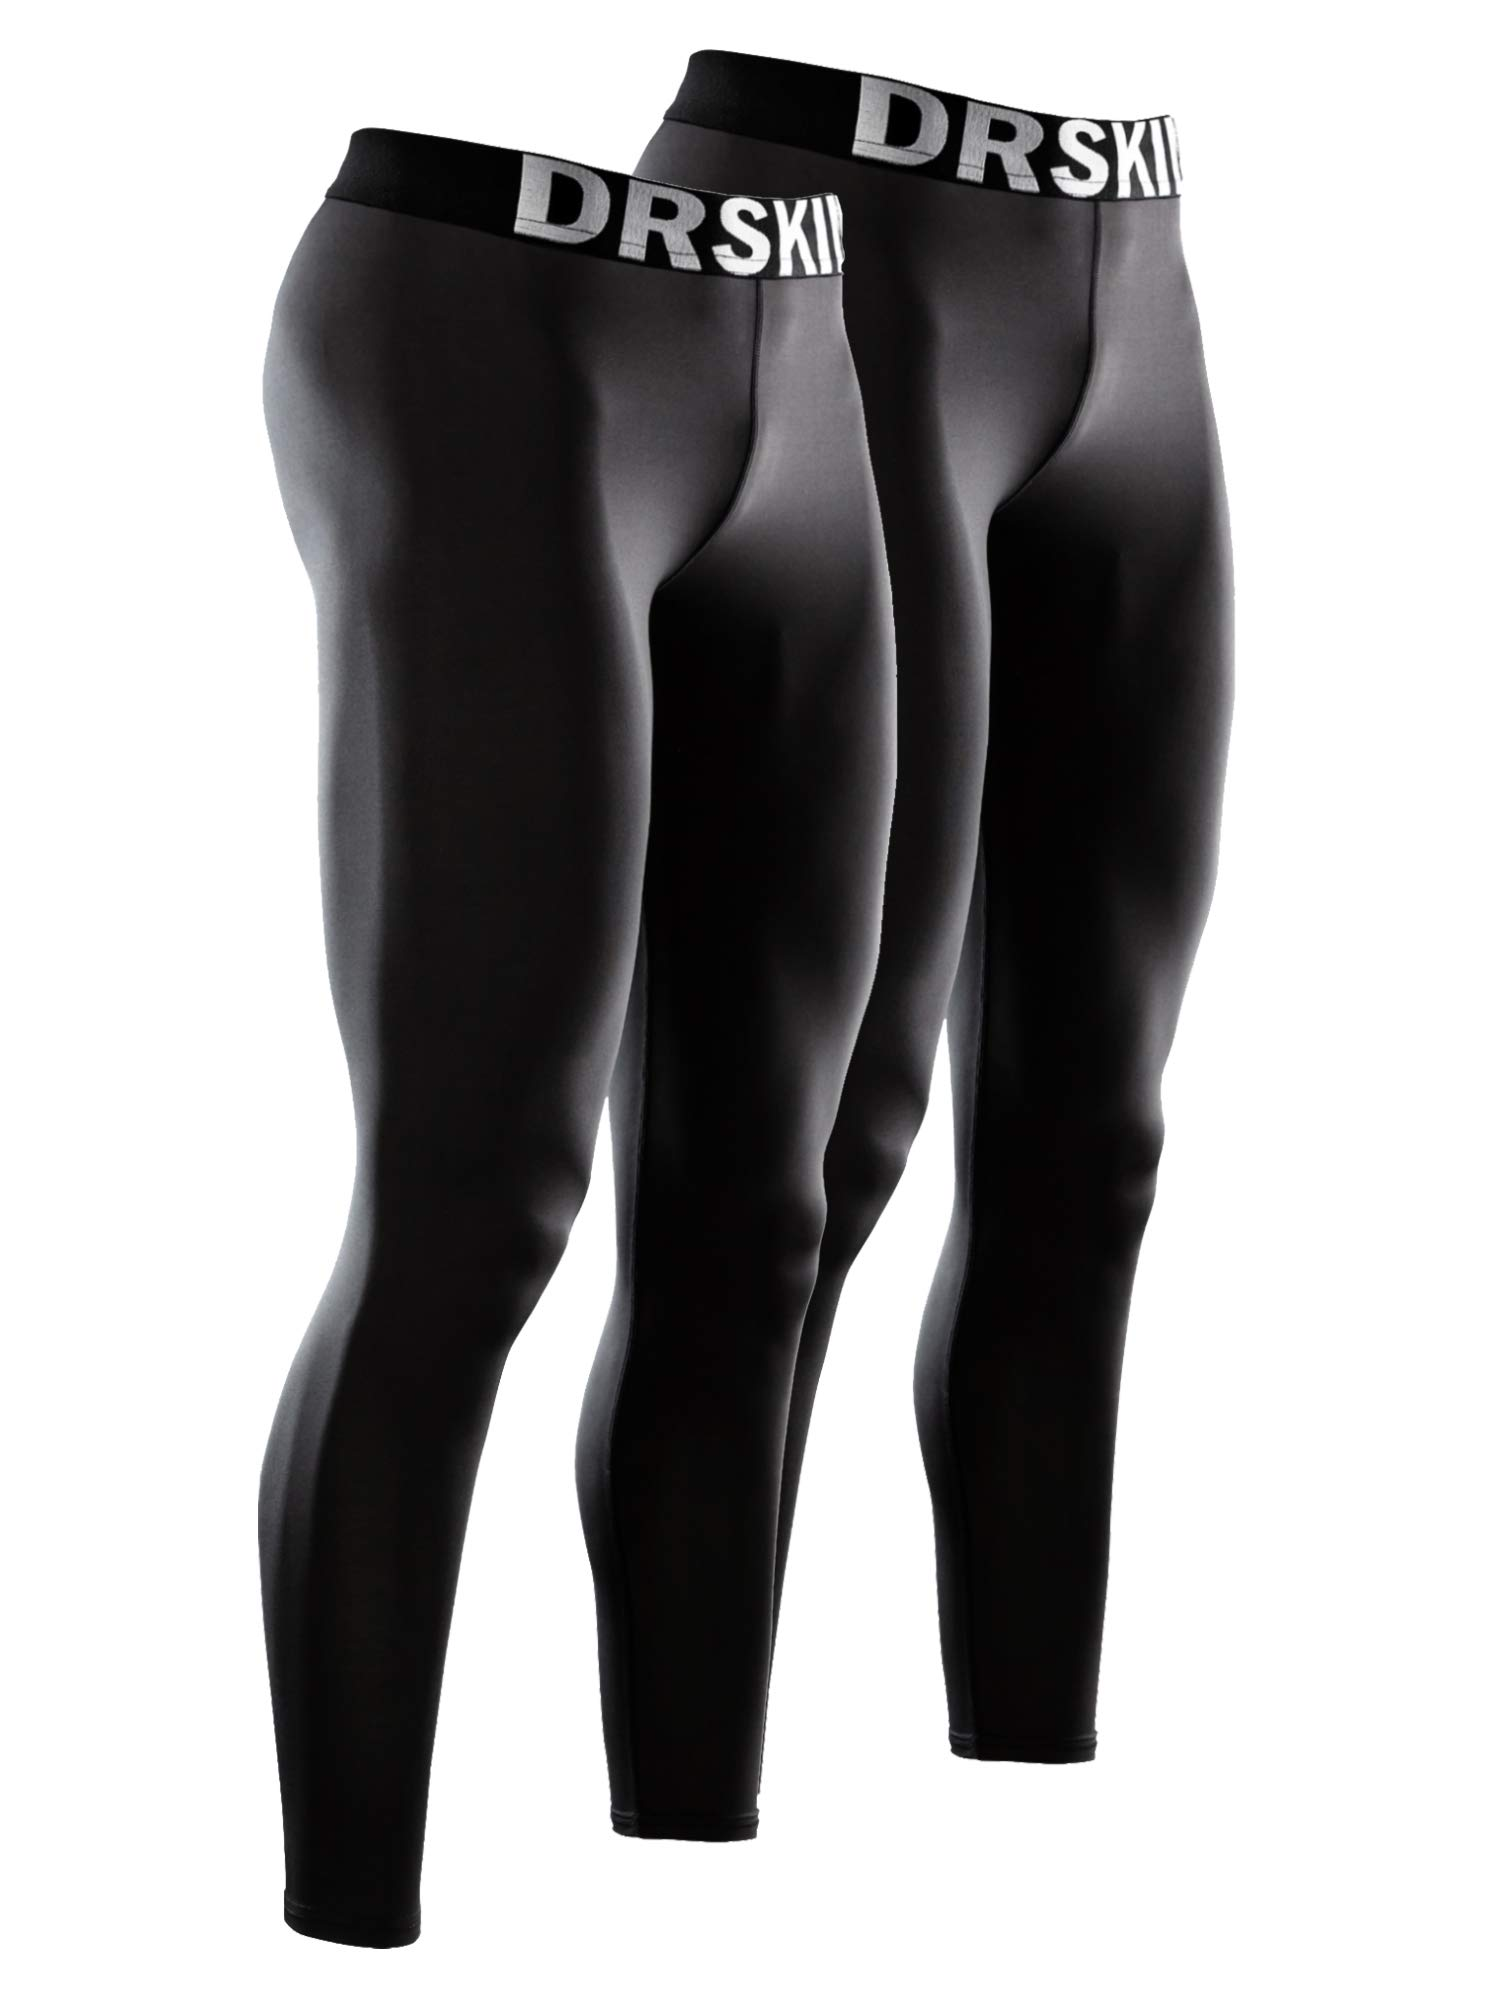 DRSKIN 1~3 Pack Men's Compression Dry Cool Sports Tights Pants Baselayer Running Leggings Yoga (Packs of 1, 2, or 3 Deals) (Classic B01 2P, S) by DRSKIN